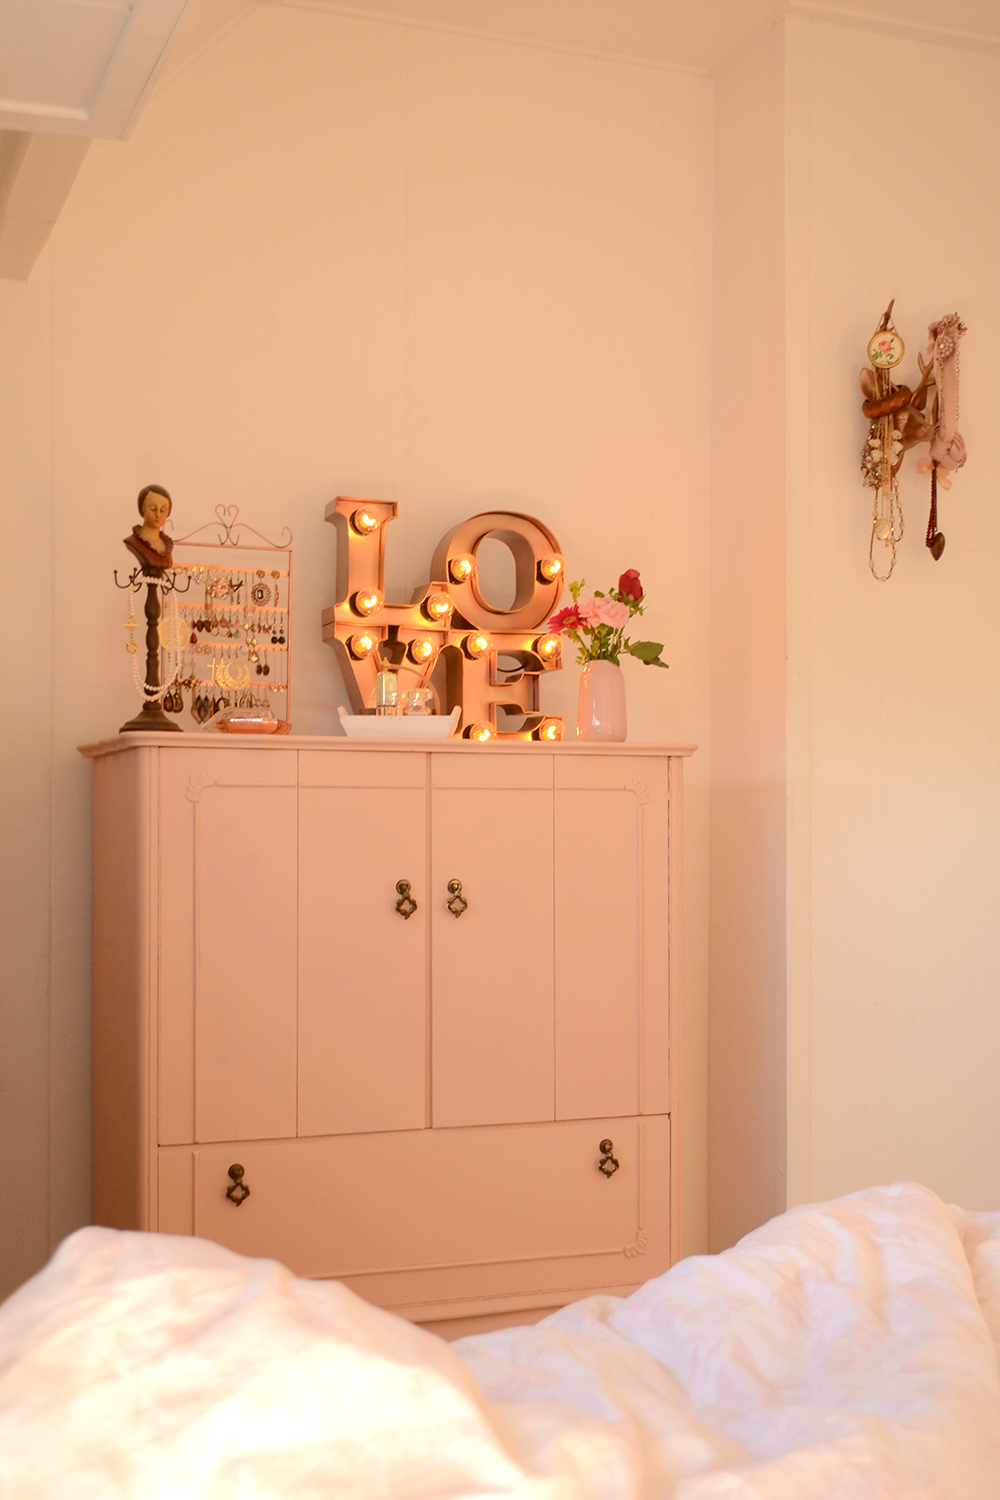 Retromantisch retro interior blog bulb lamp industrial vintage cabinet pink nude jewelry make up corner Sissy Boy H&M